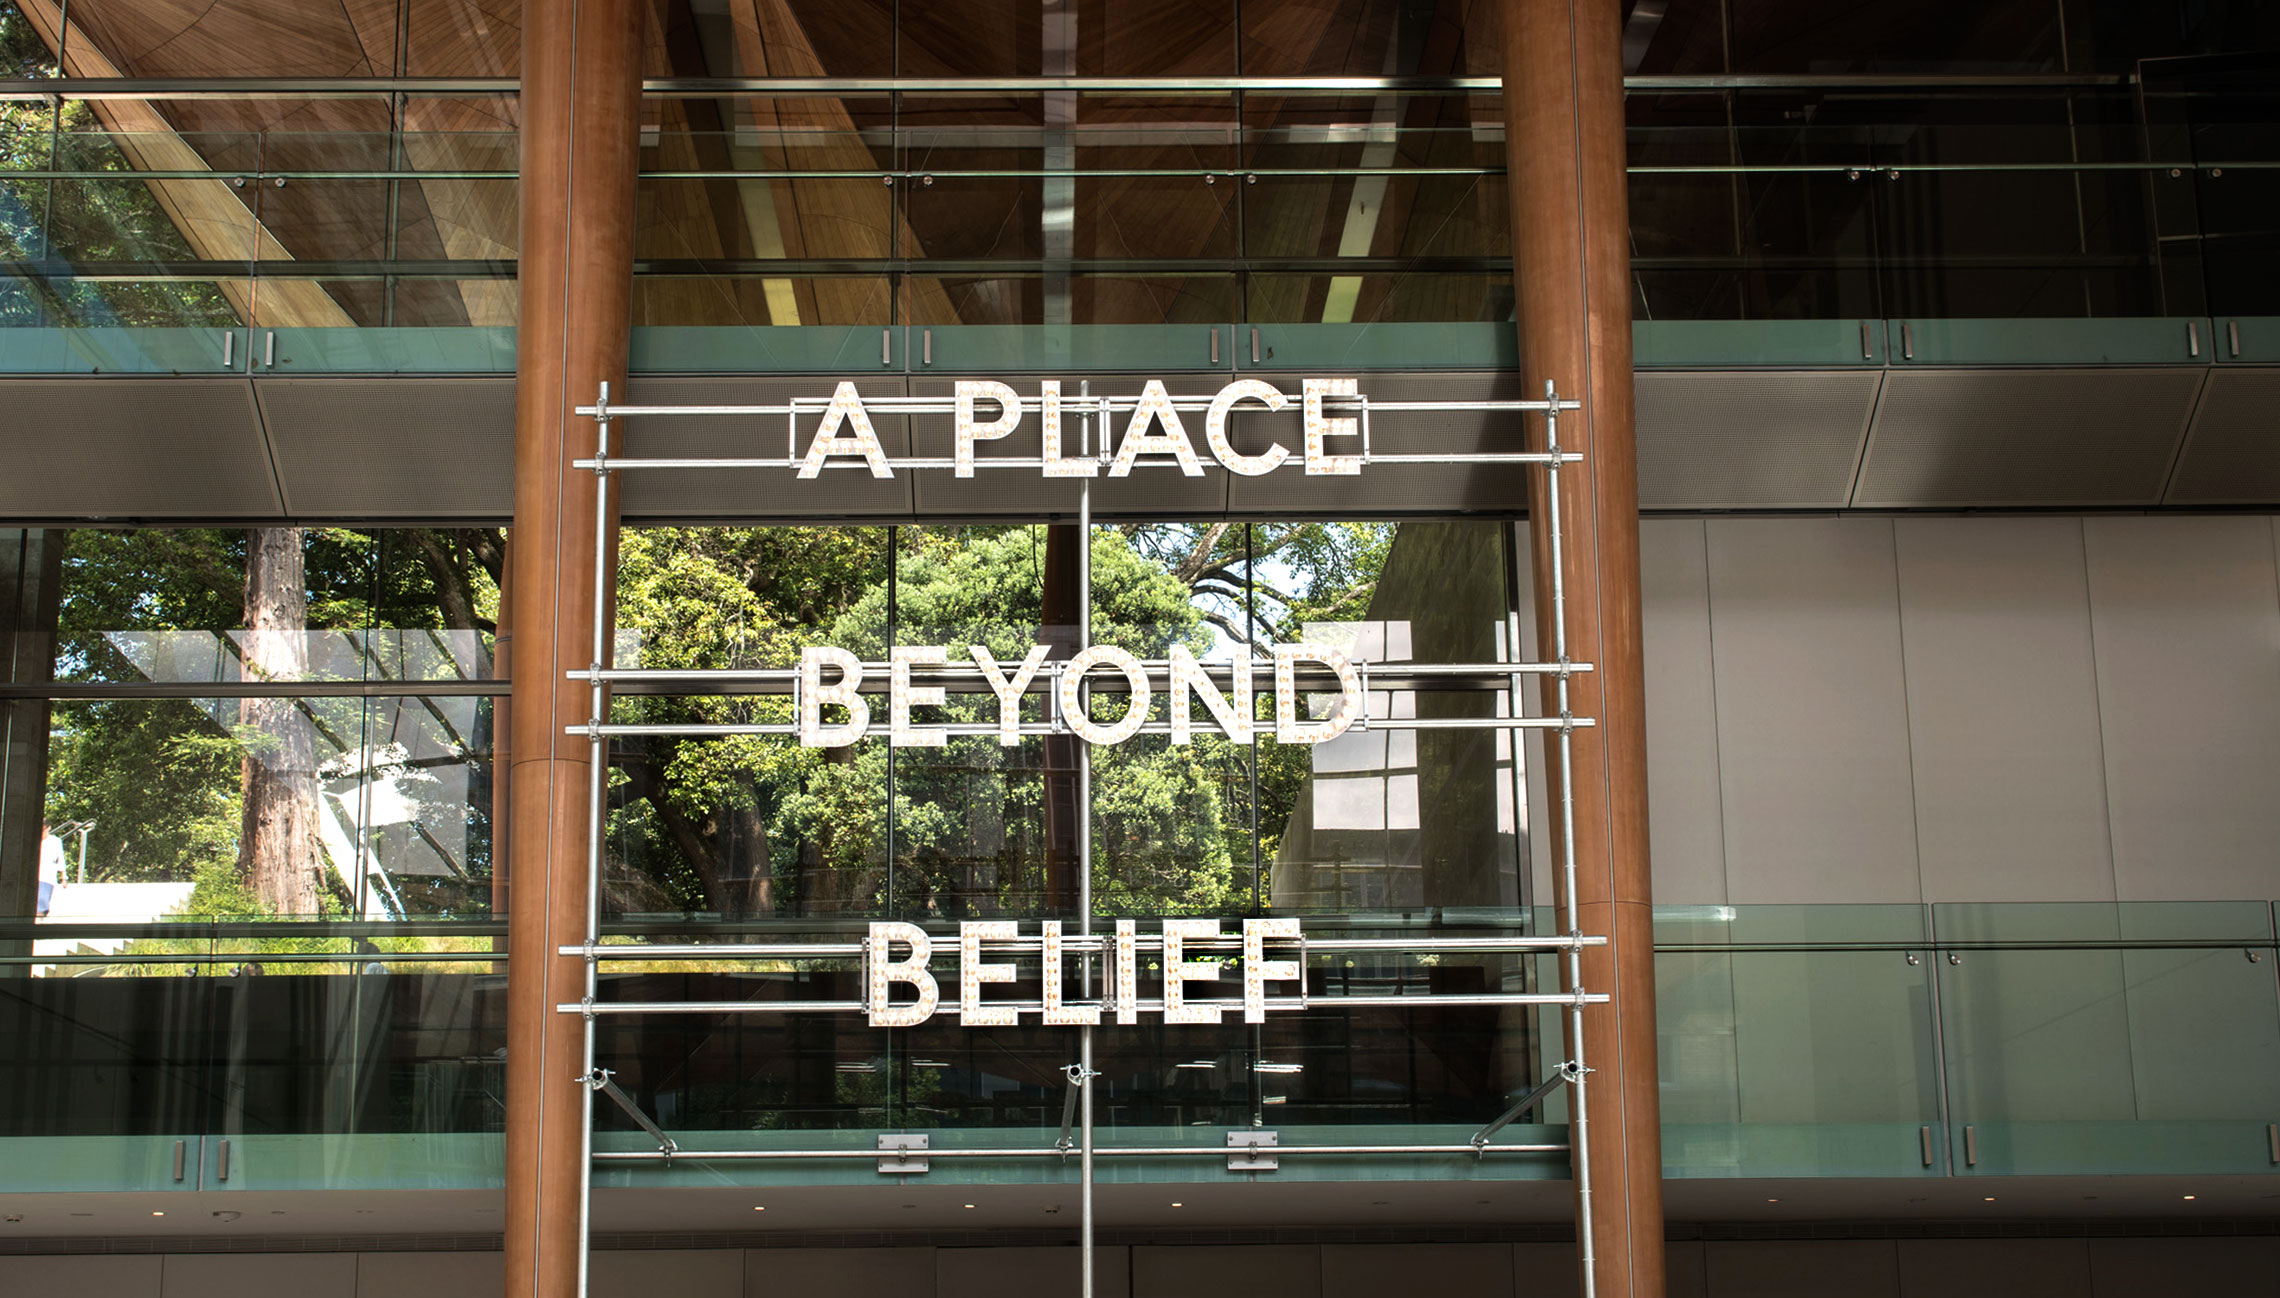 Nathan Coley: A Place Beyond Belief